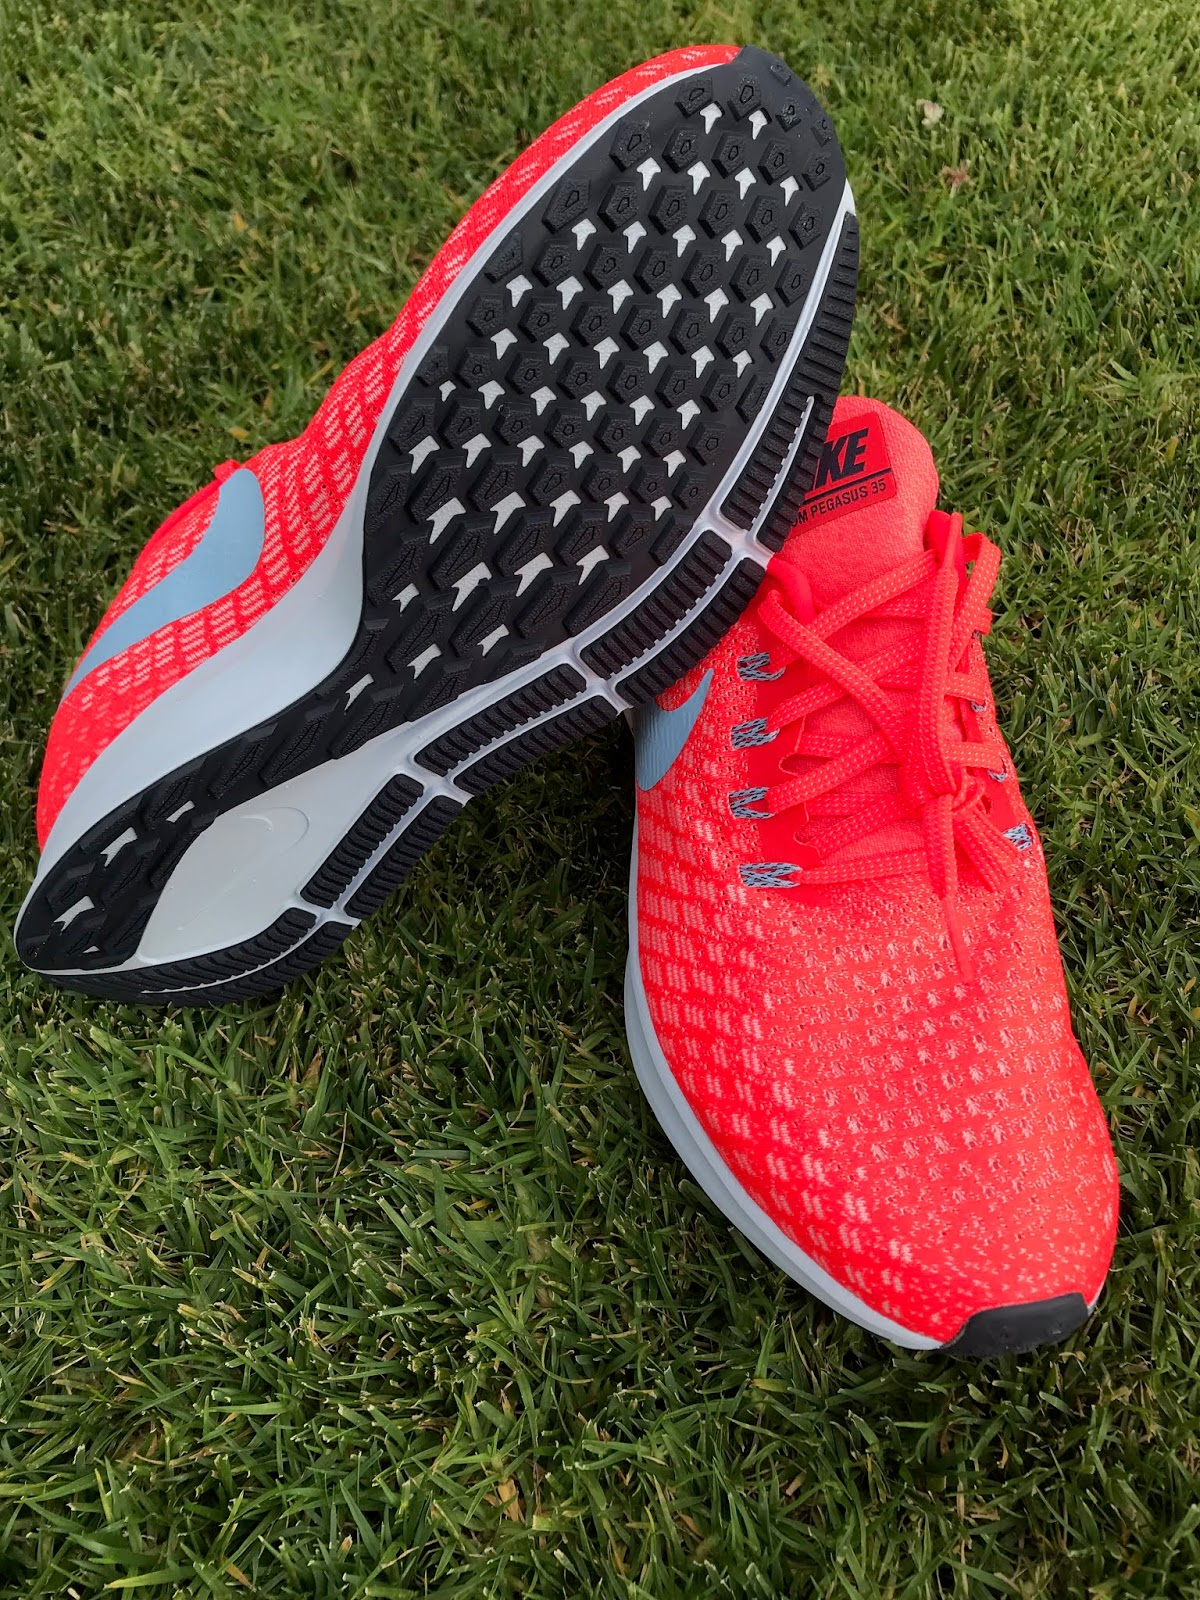 on sale 58ba1 c6e44 The Pegasus 35 has rekindled my love for the Pegasus line. They are a silky  smooth and very comfortable daily trainer. I had started to feel that the  older ...